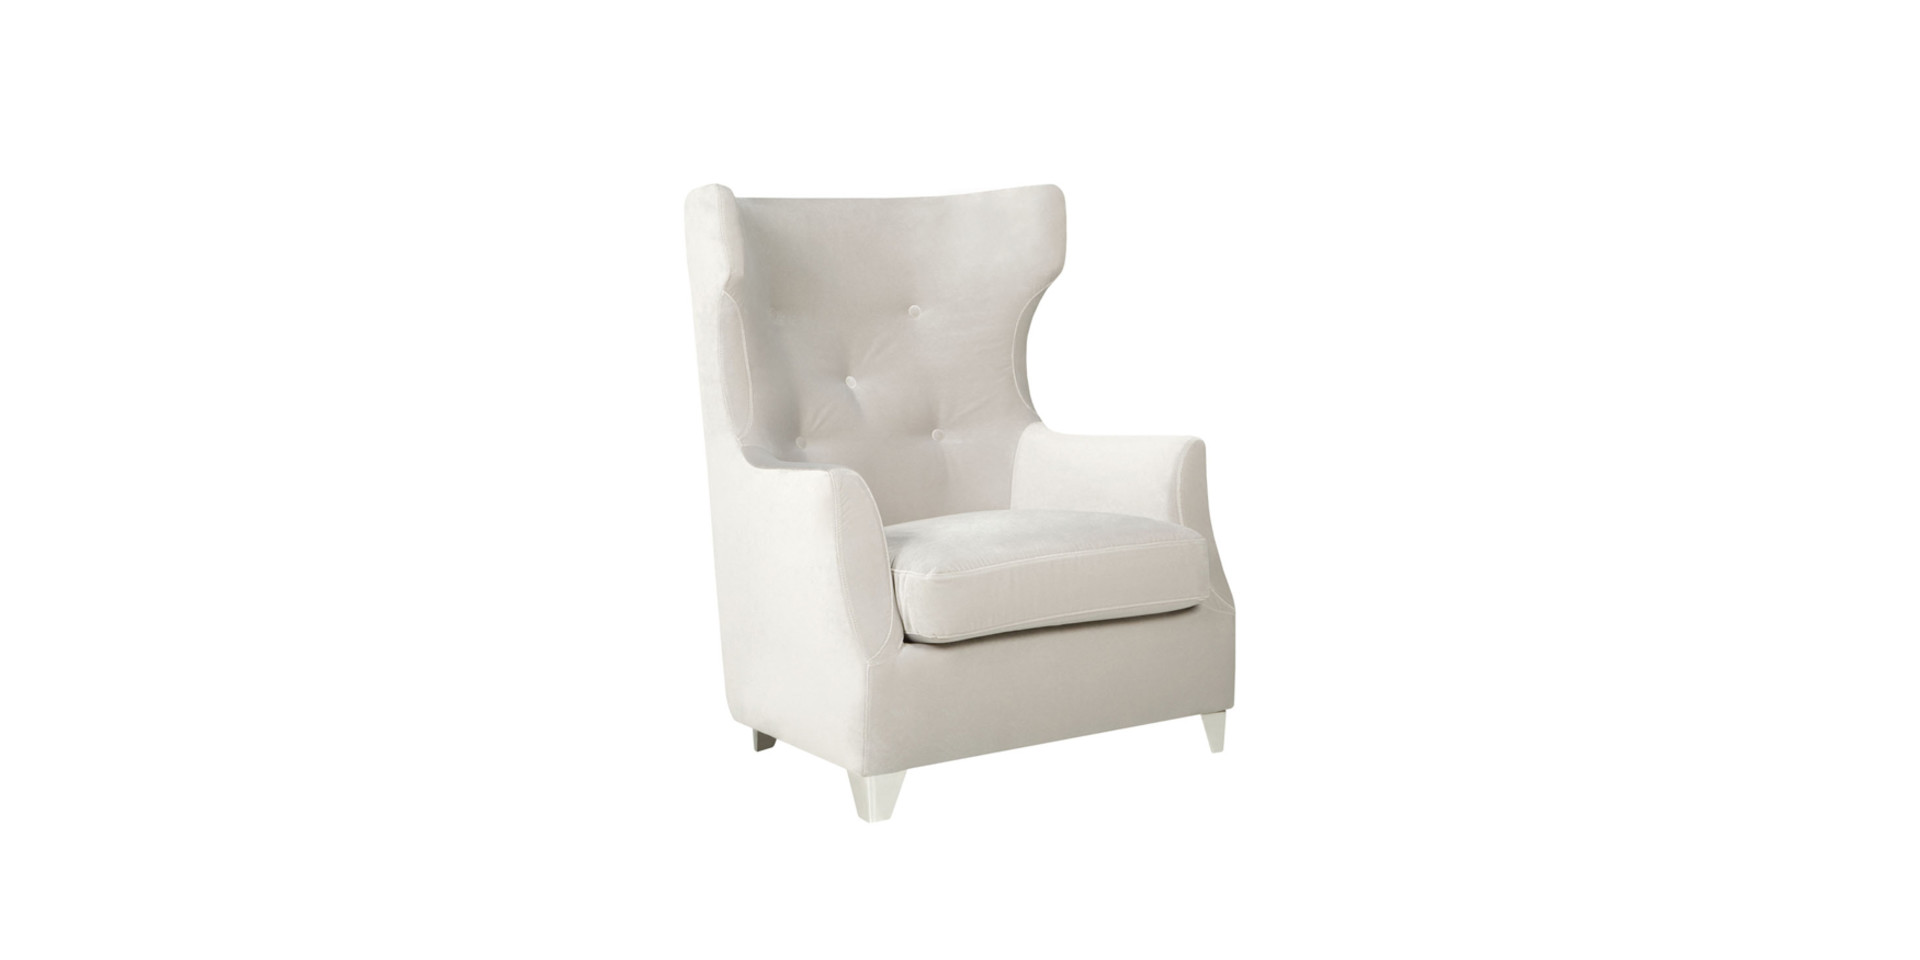 ROSE_armchair_high_classic_velvet4_light_grey_2